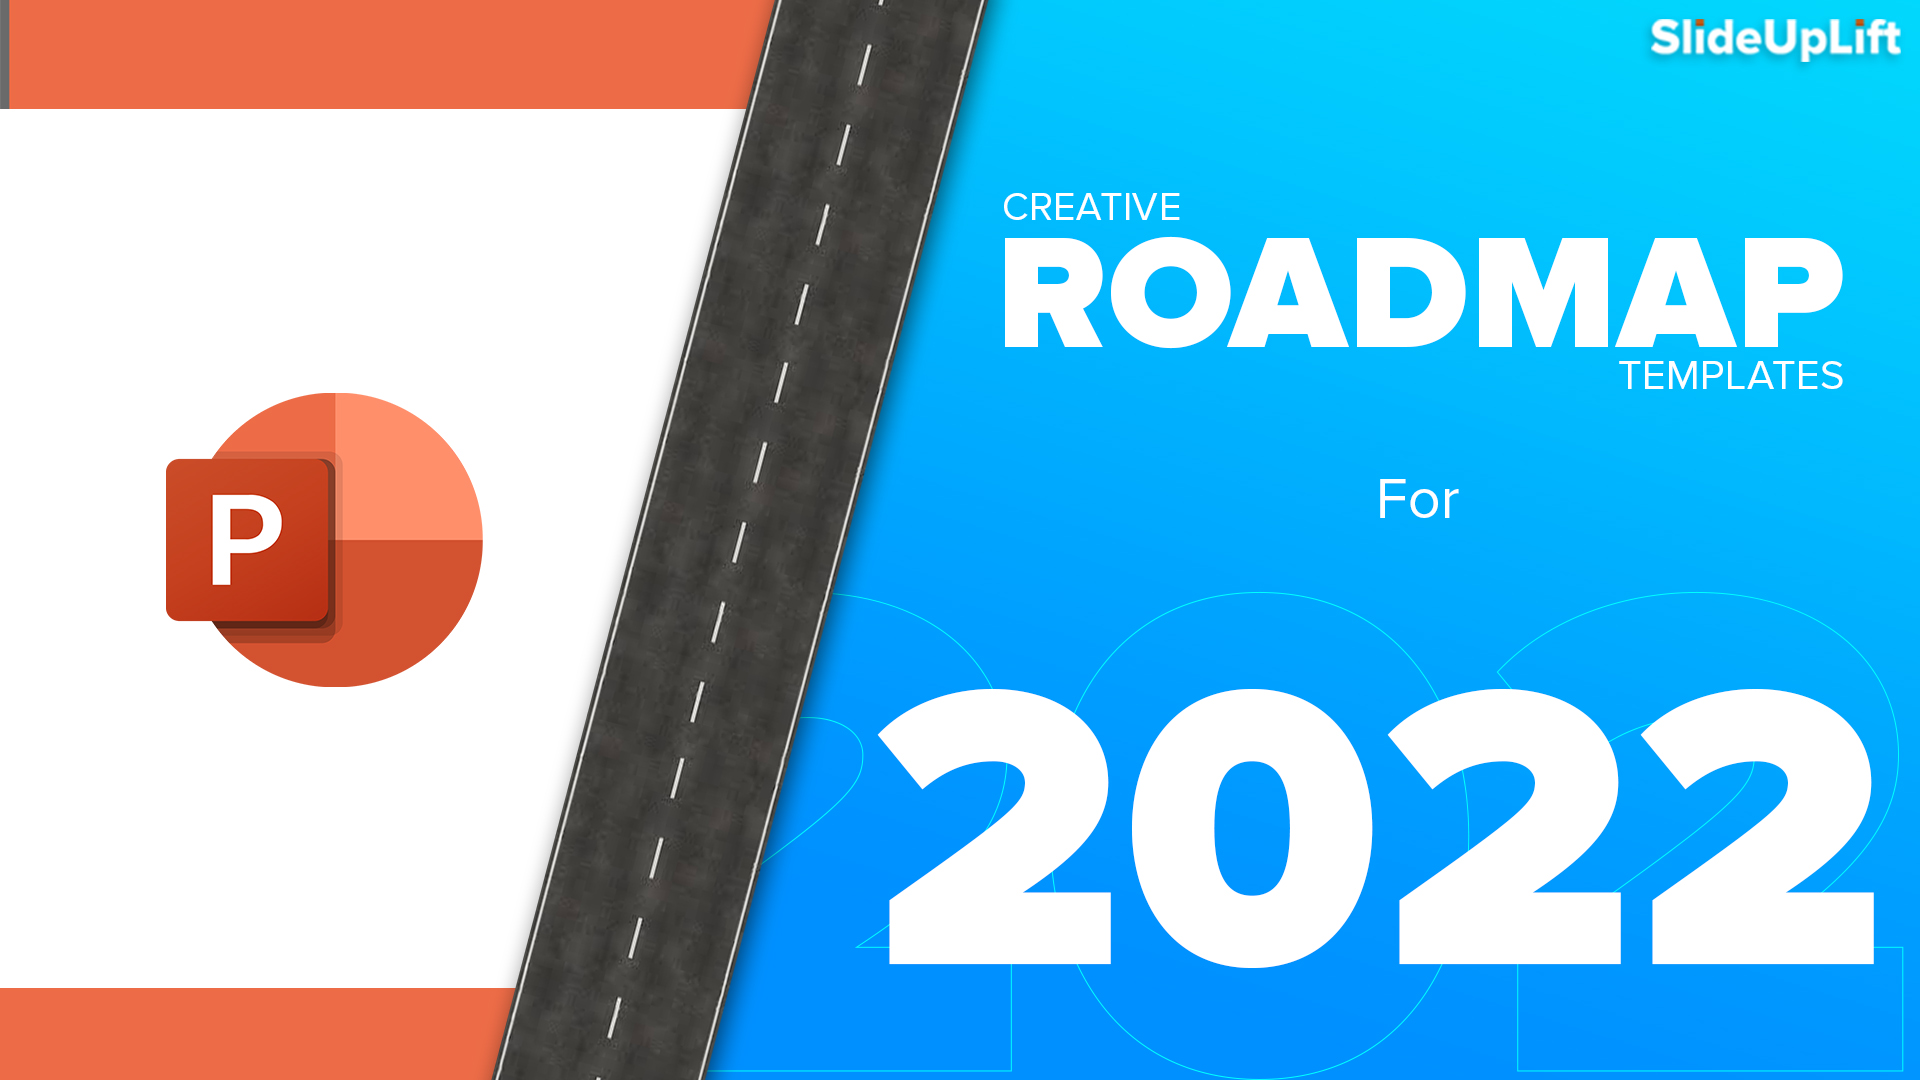 Creative Roadmap PowerPoint Templates for 2022 Business Planning Plus Free Roadmap Template